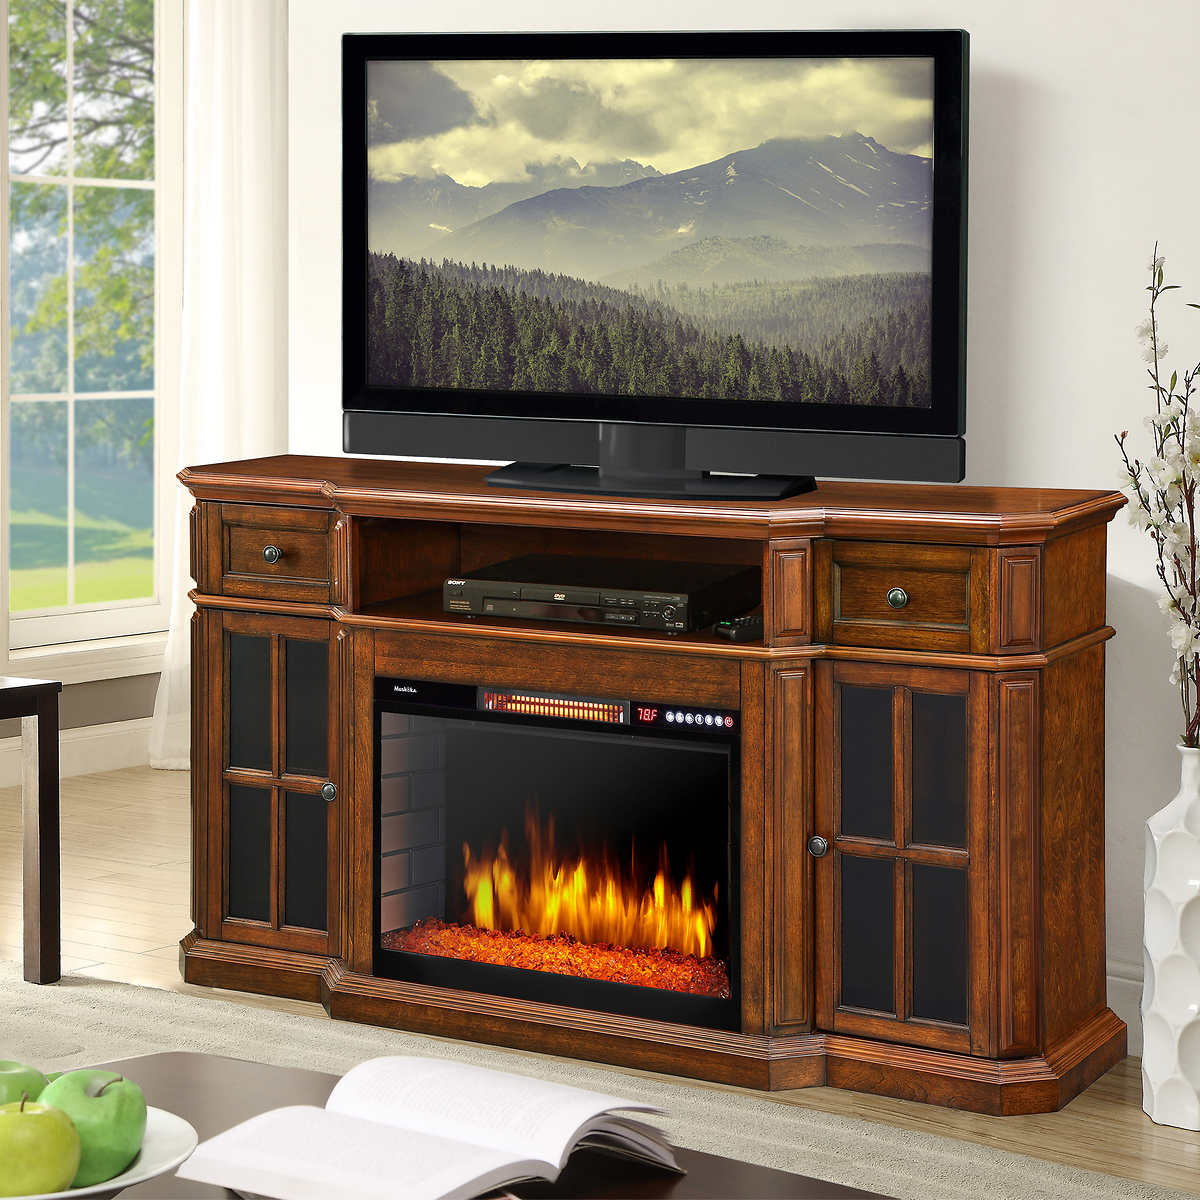 Muskoka Sinclair 20 in. Media Electric Fireplace with LED Lights and  Bluetooth